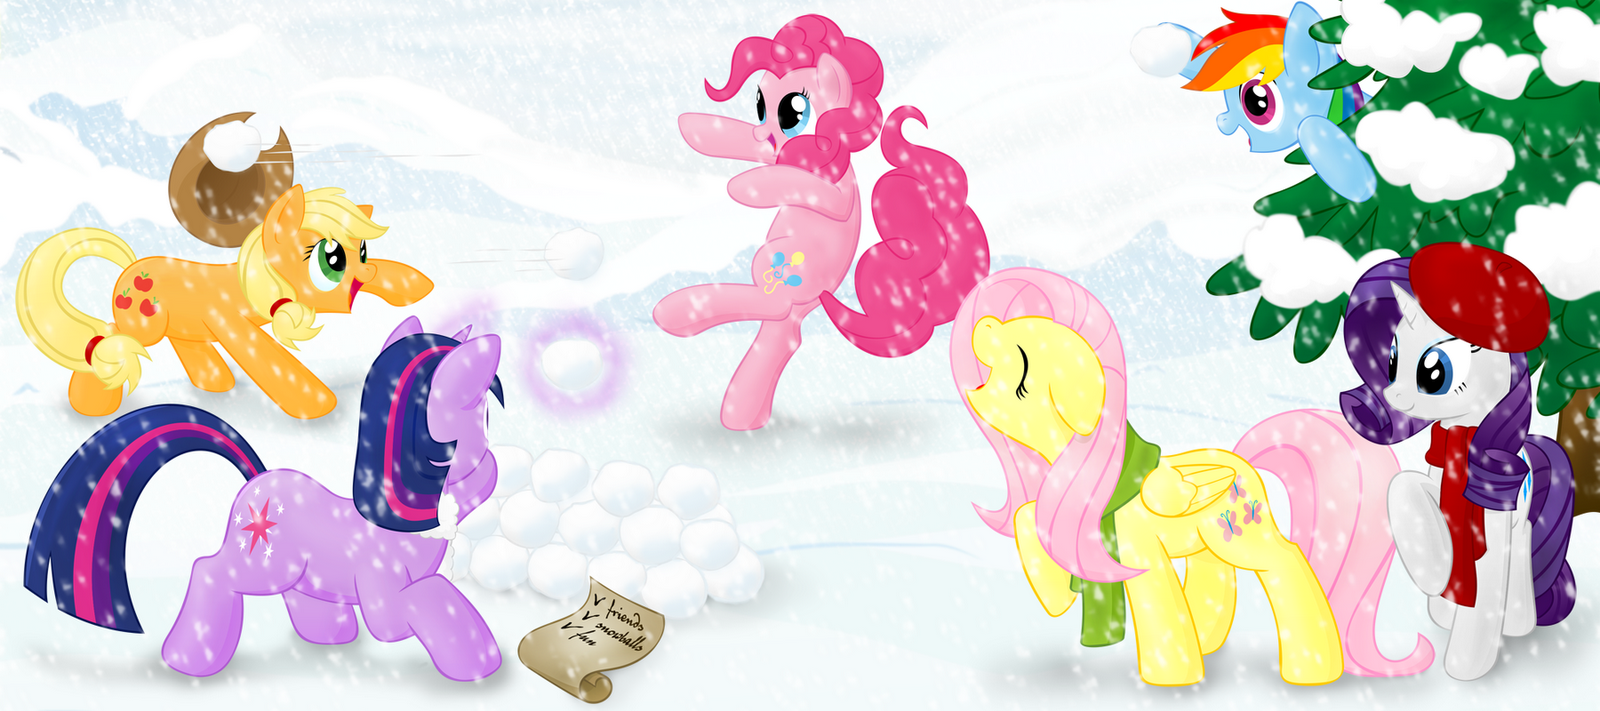 95585+-+applejack+artist+stardustxiii+fluttershy+pinkie_pie+rainbow_dash+rarity+snow+snowball+twilight_sparkle+winter.png